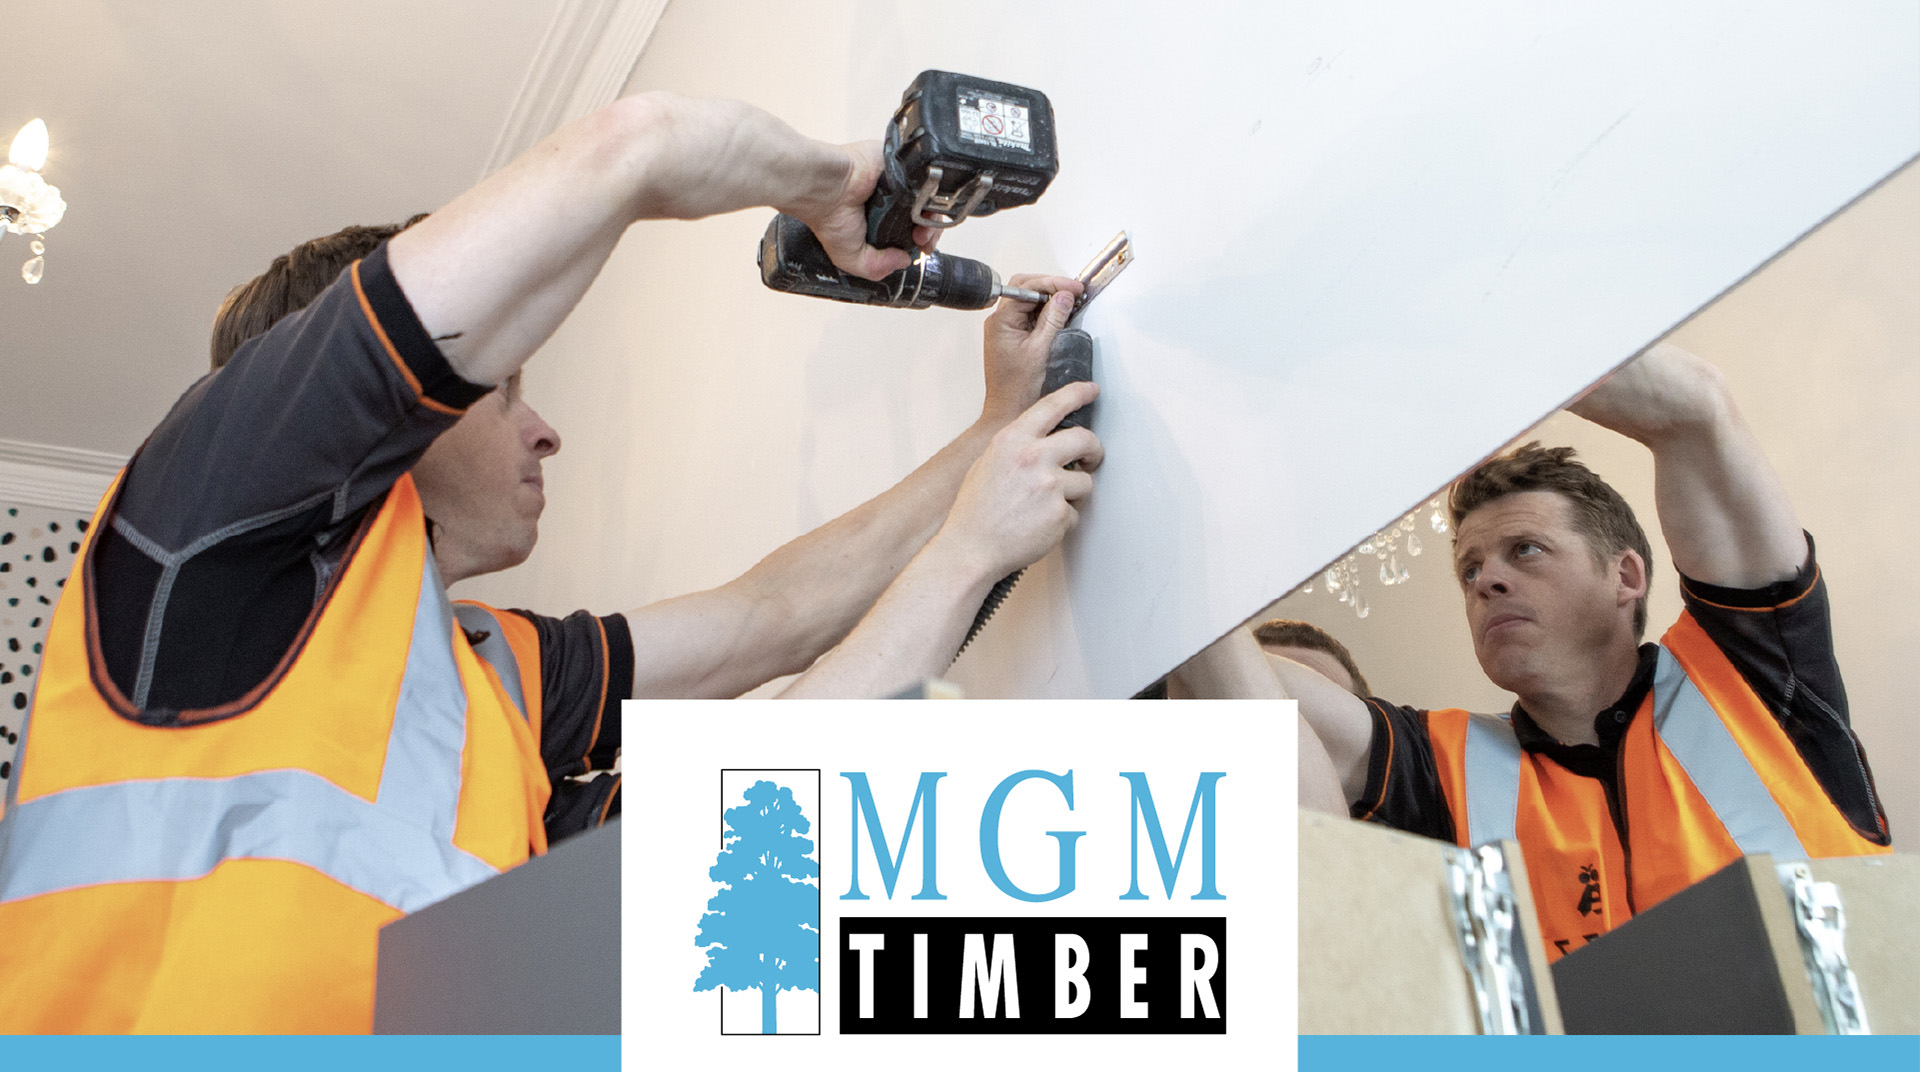 Two Buzz hive fitters installing holding systems for Buzz home office furniture, with the MGM Timber logo in front who work in Partnership with Buzz home office